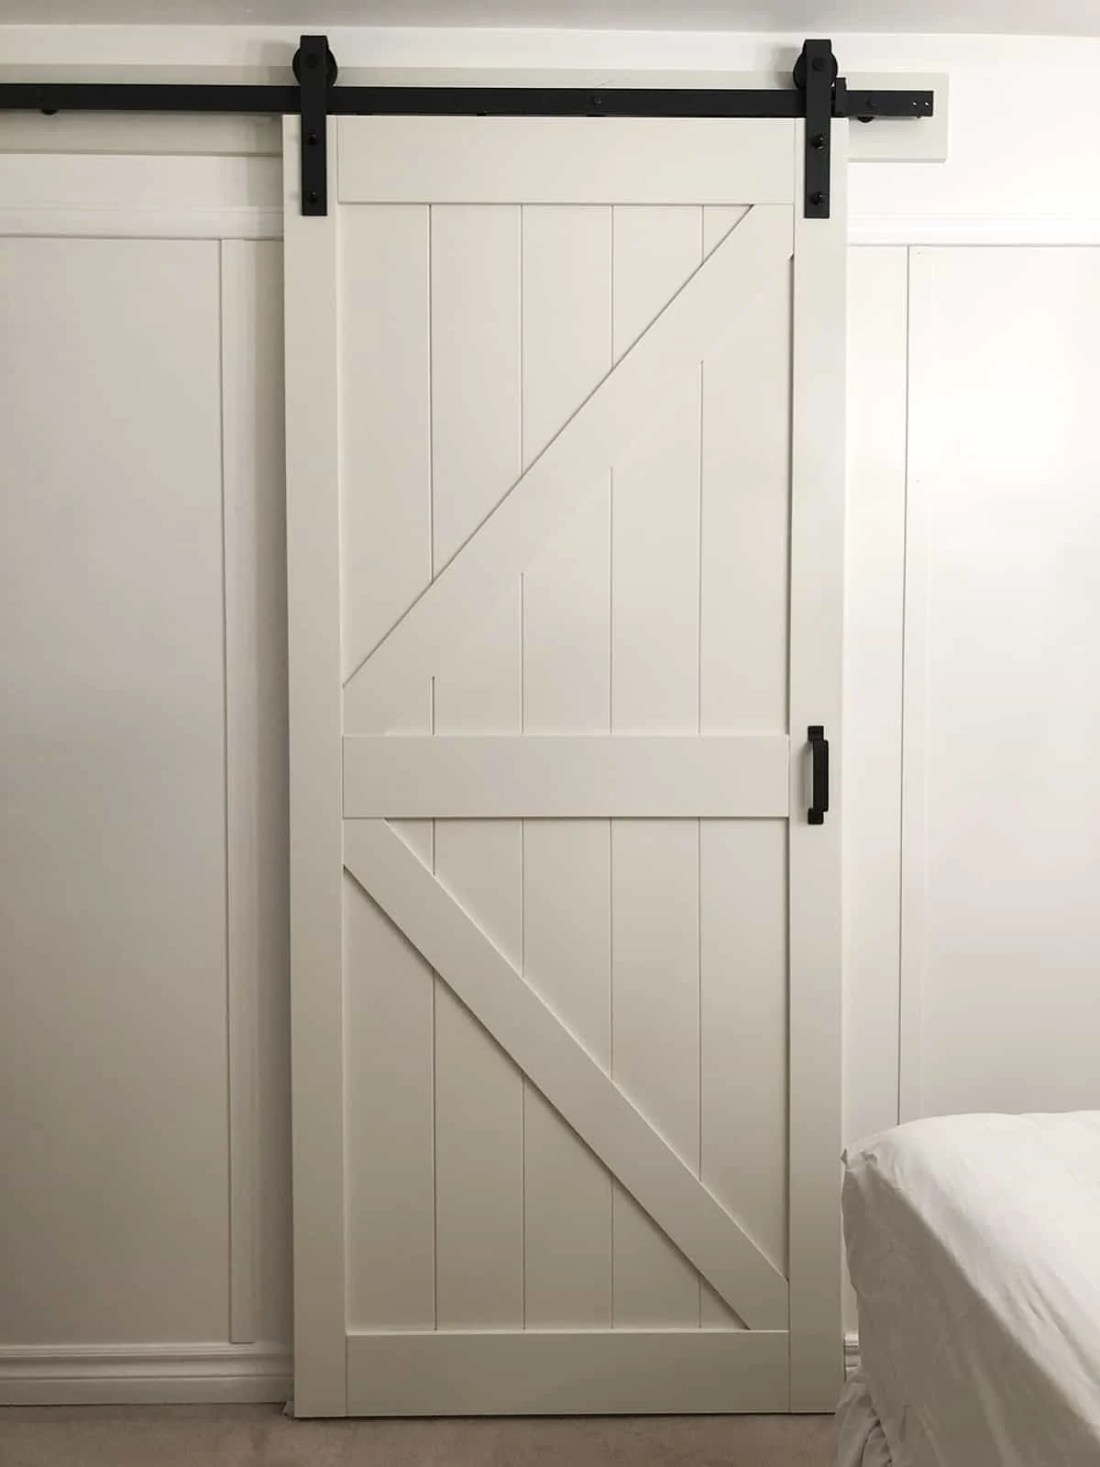 Make Space with a Barn Door (Guest Room Makeover Wk 3 of 6)